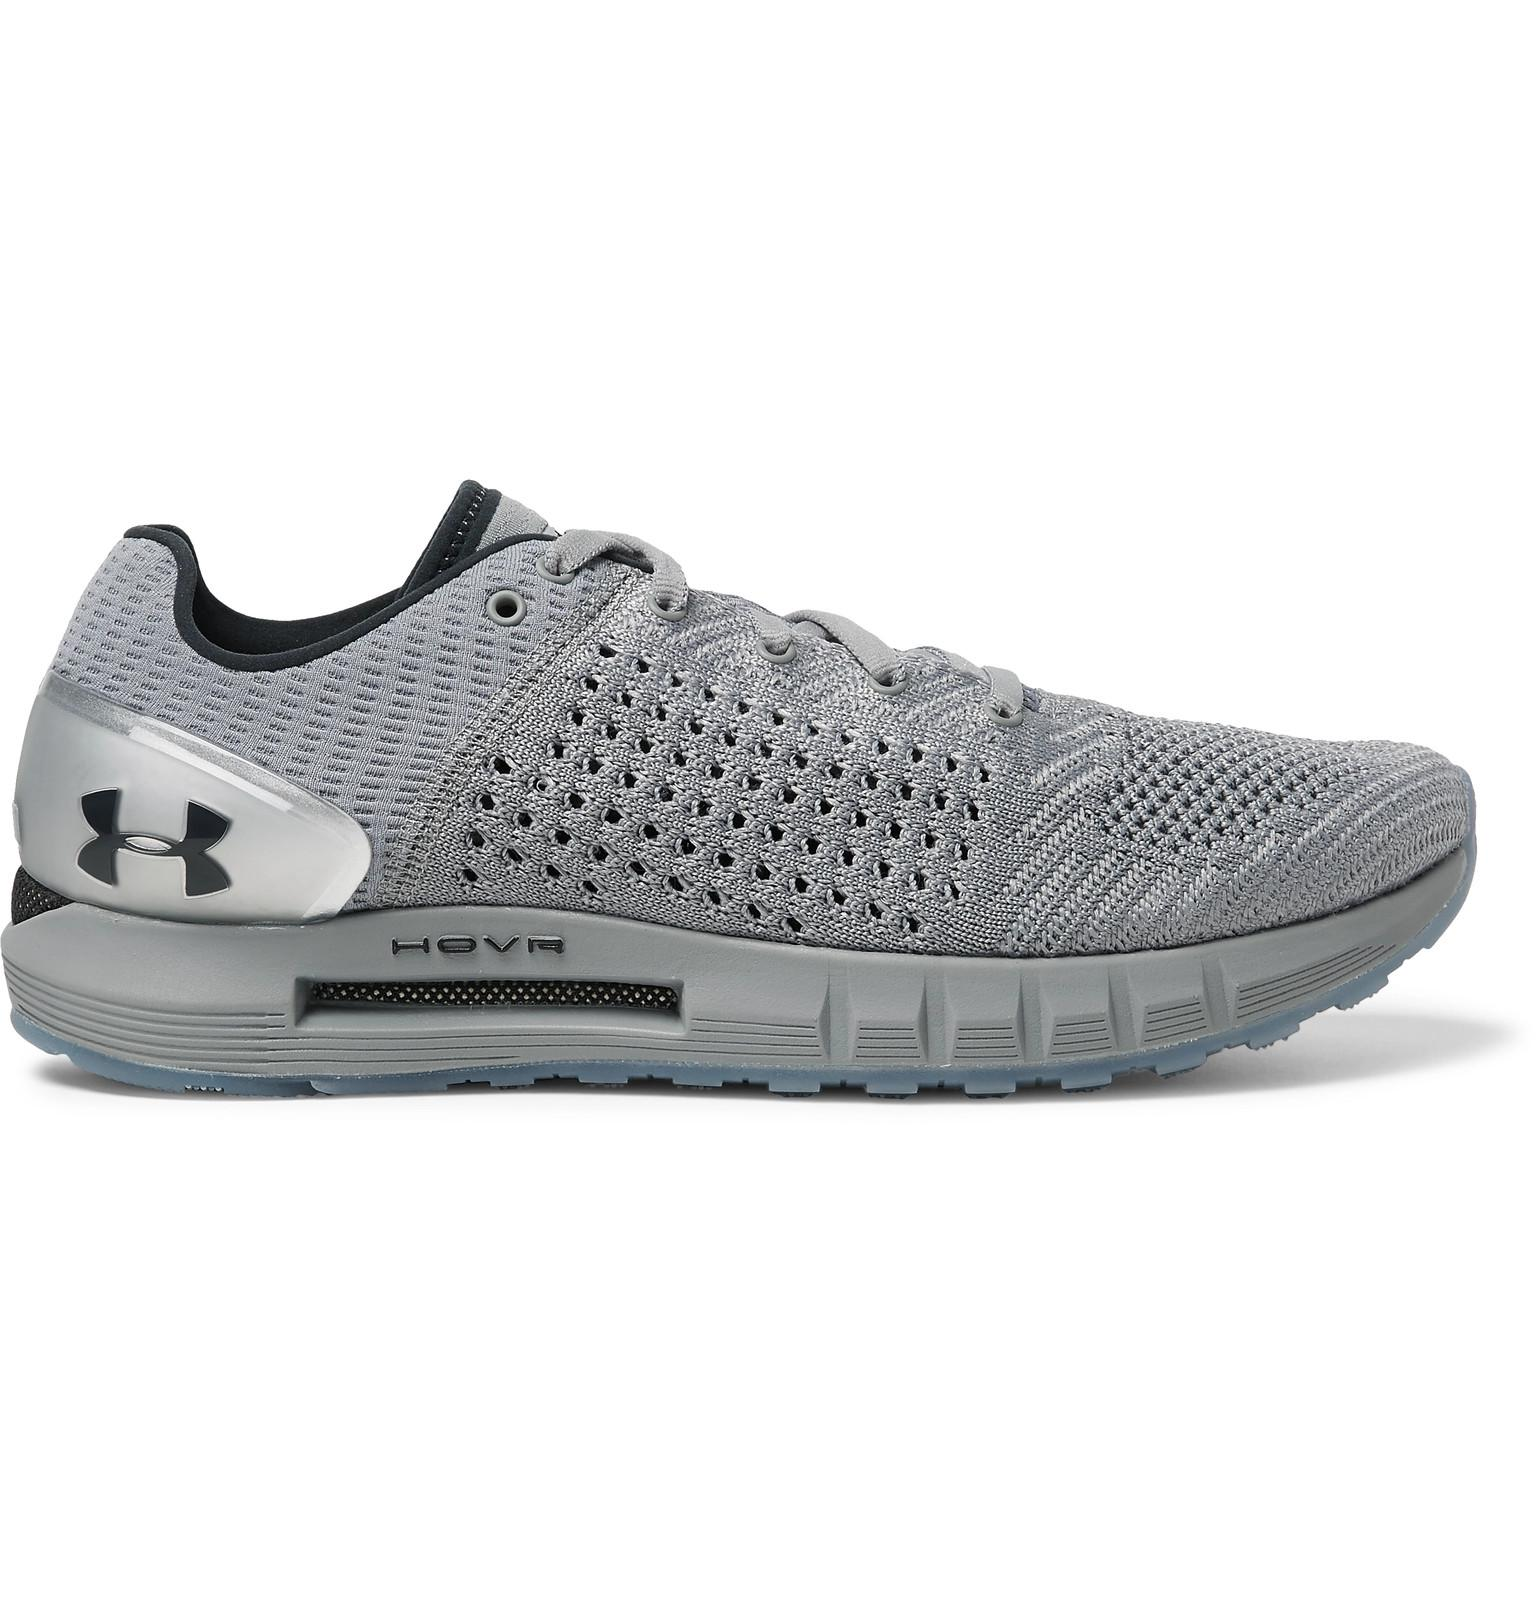 Hovr Sonic Stretch-knit Running Sneakers Under Armour KWf67Uo9Ir